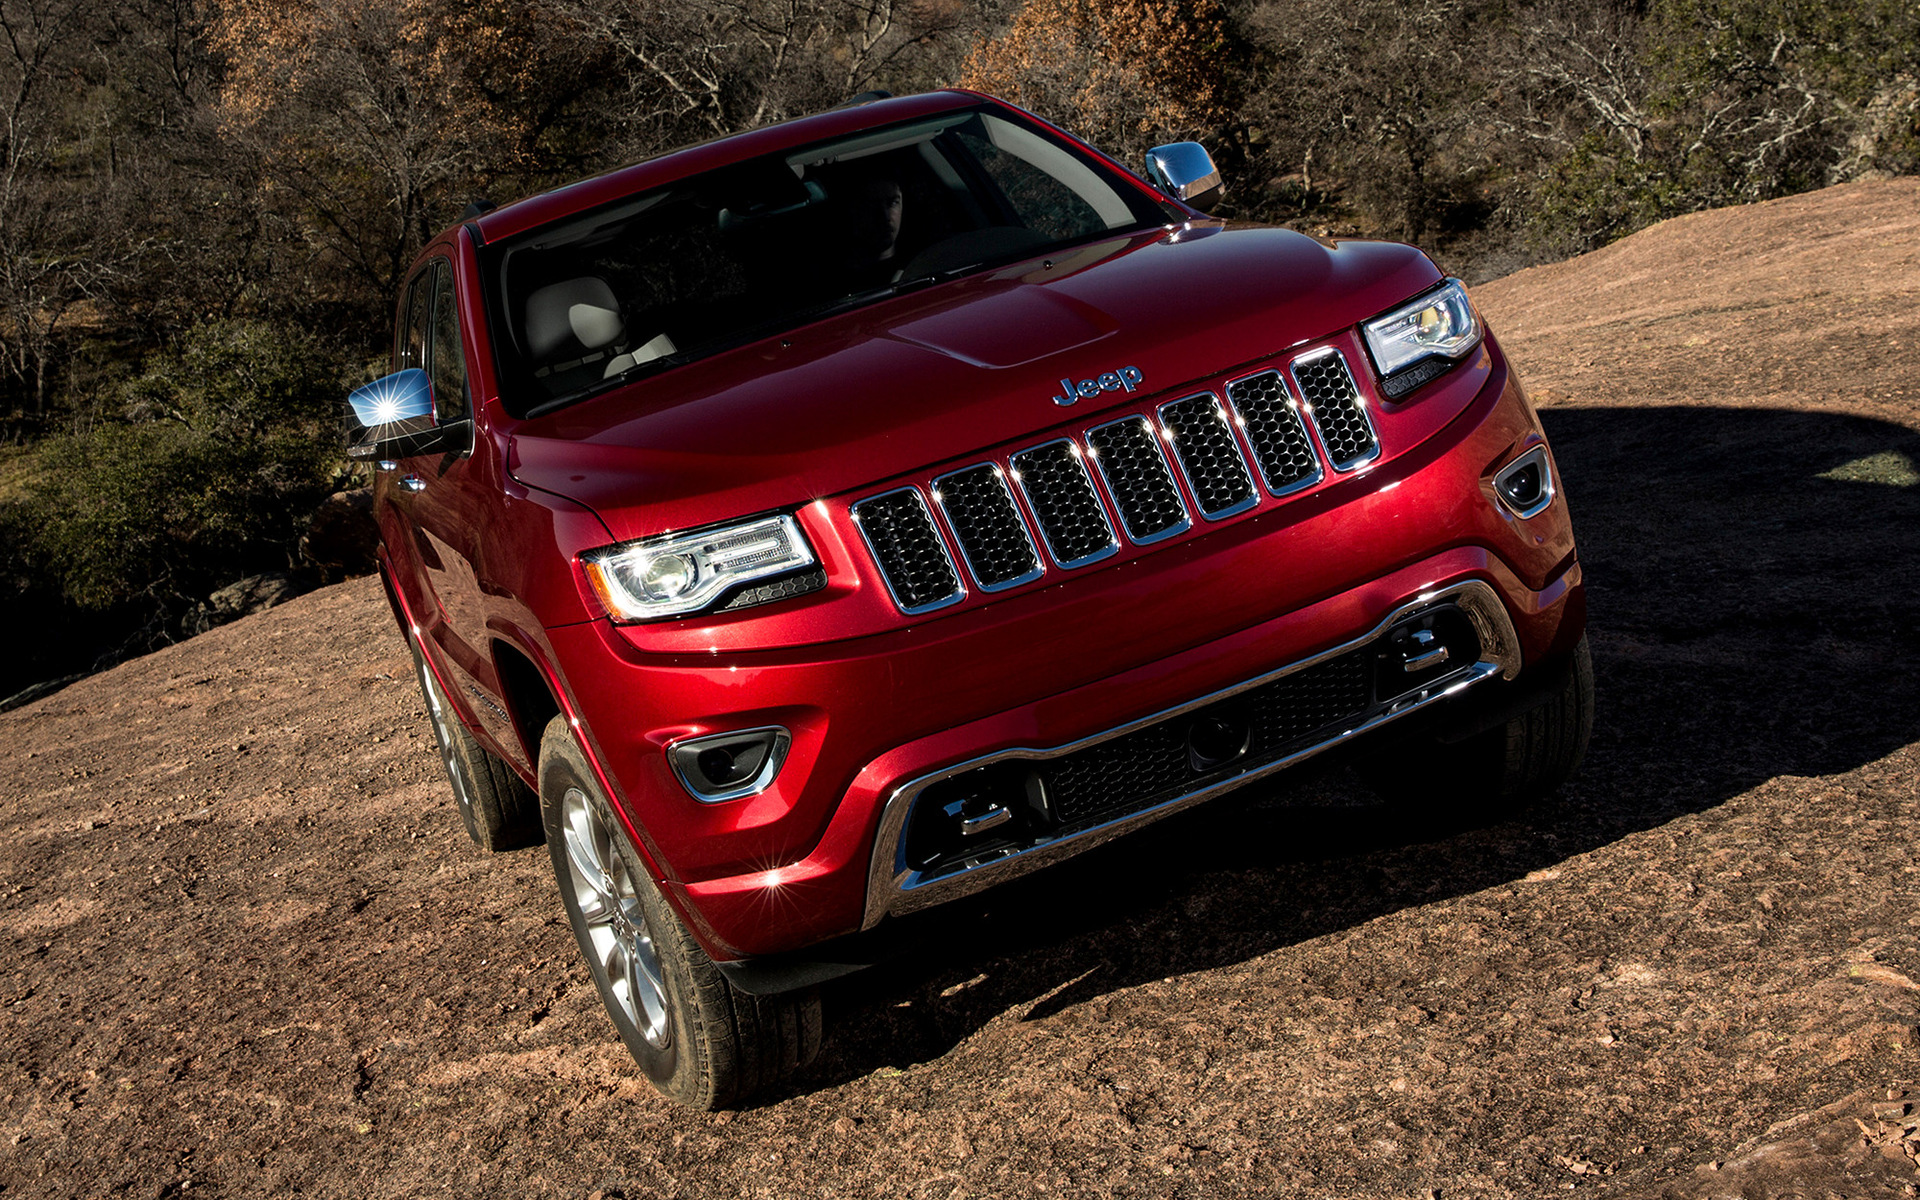 Jeep grand cherokee trailhawk desktop wallpaper hd car wallpapers - Jeep Grand Cherokee Overland 2013 Wallpapers And Hd